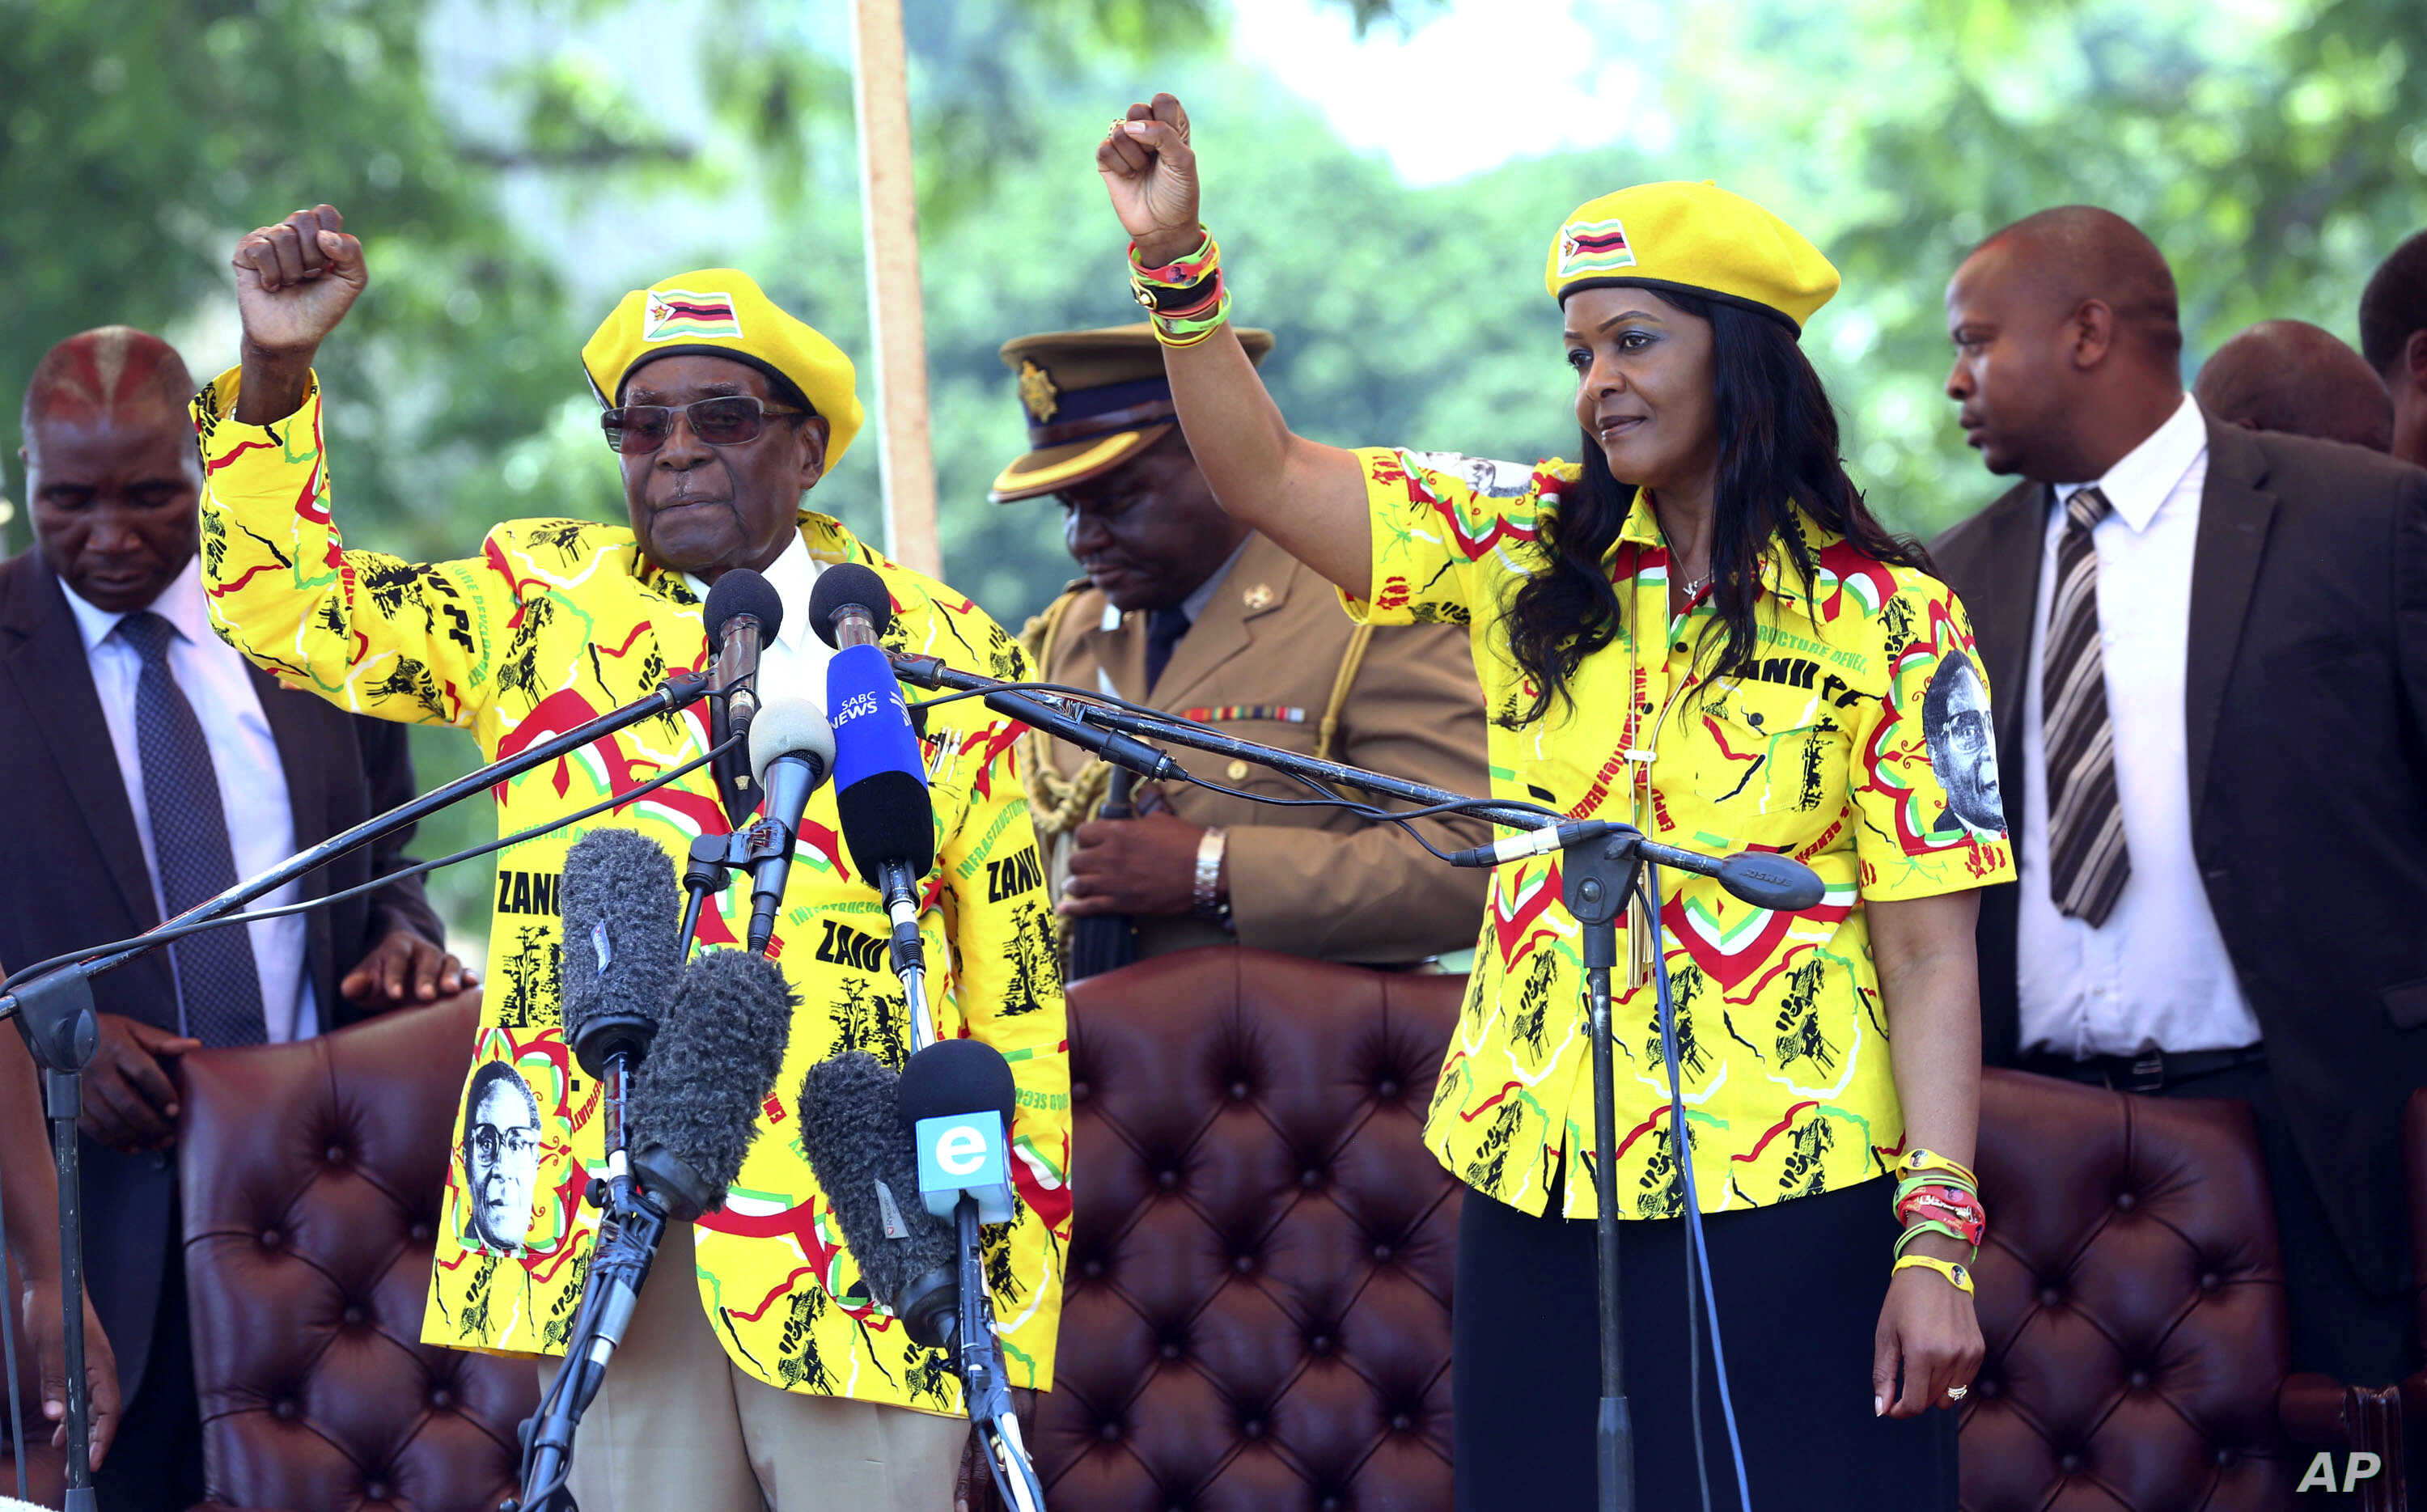 Zimbabwe's President Robert Mugabe, left, and his wife Grace chant the party's slogan during a solidarity rally in Harare, Wednesday, Nov. 8, 2017.